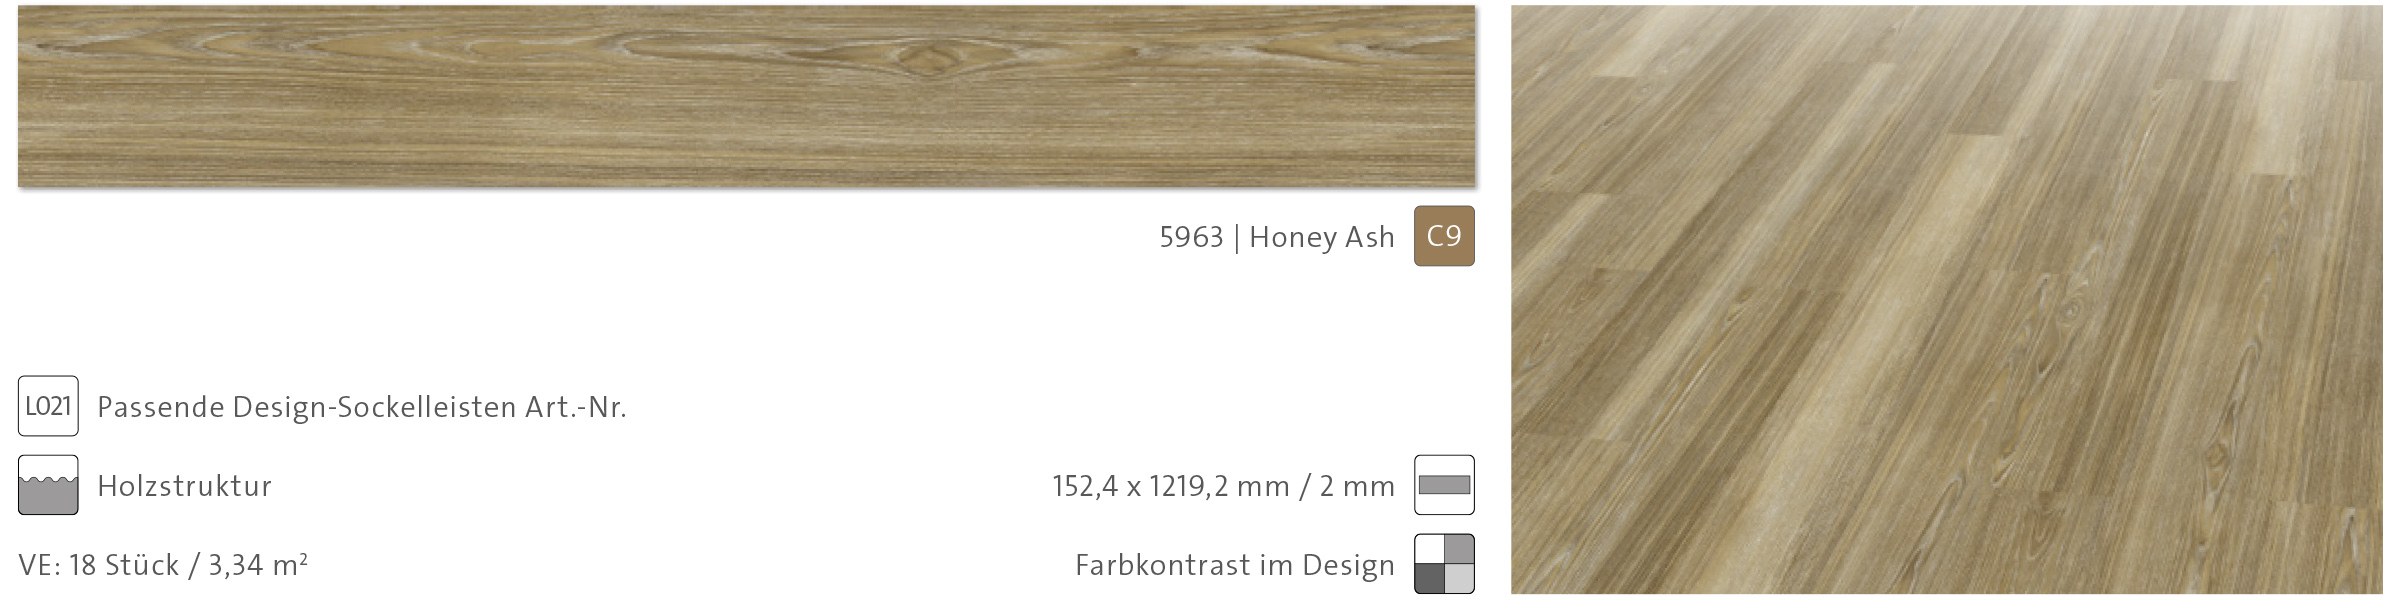 964d927866e52d 5963-Objektflor-Expona-Domestic-Boden4You-C09-Honey-Ash-description.jpg